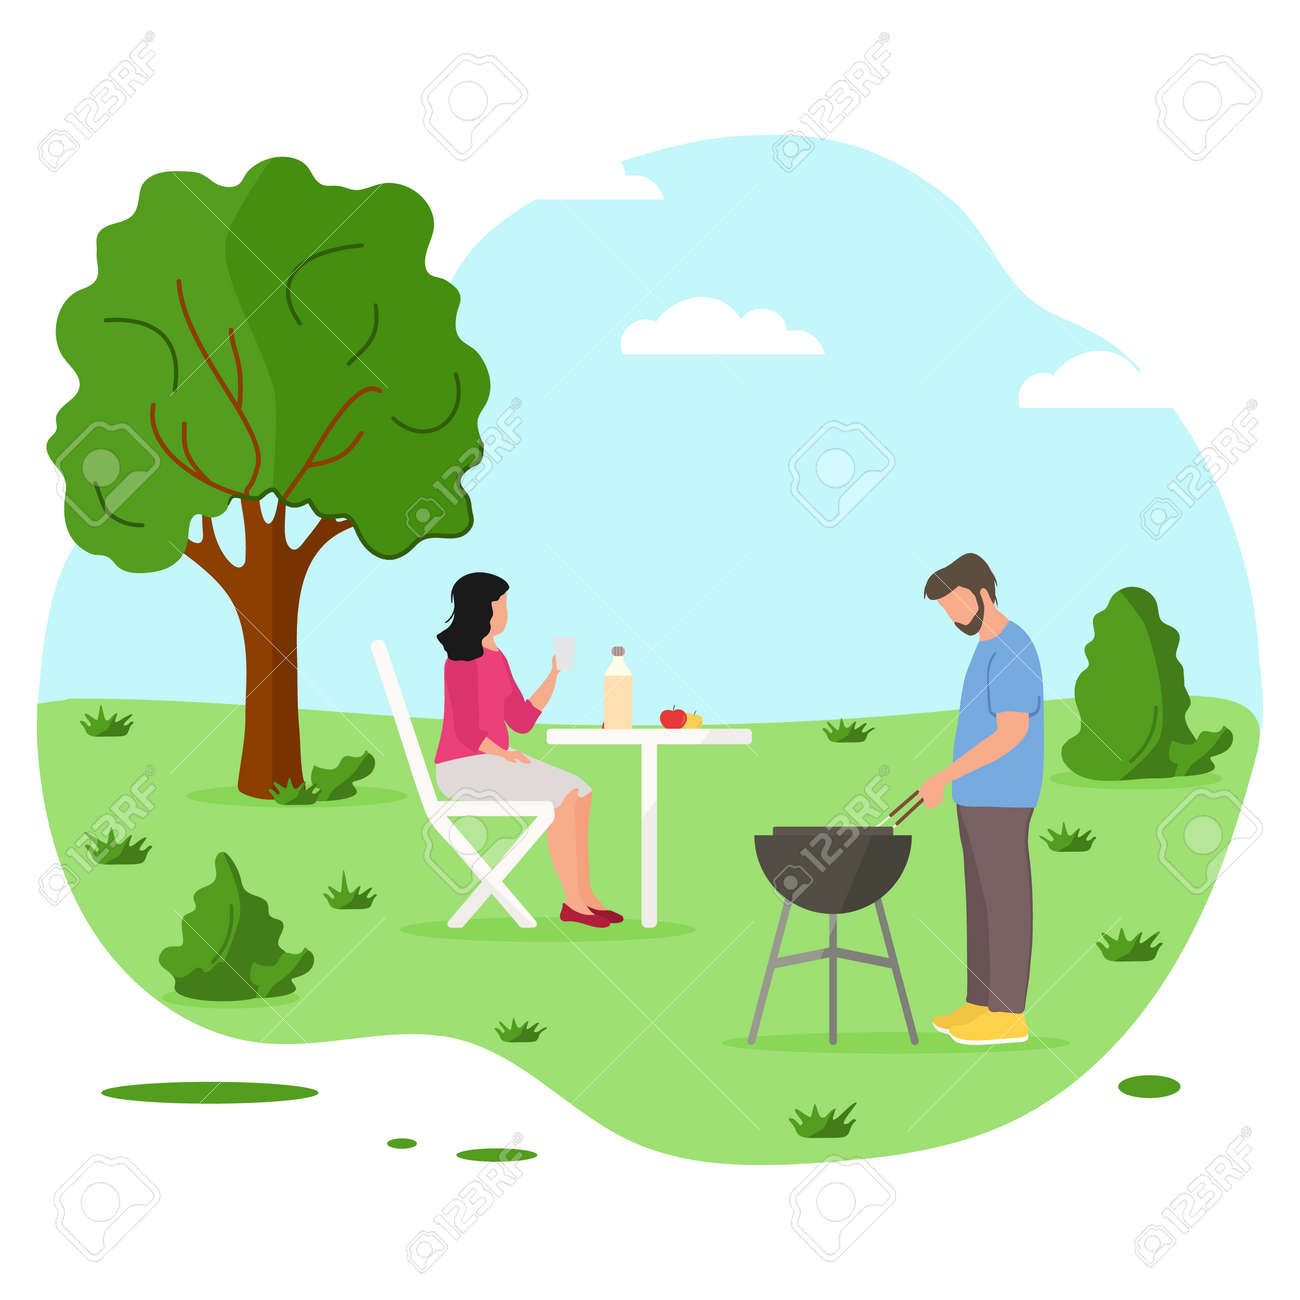 Vector illustration Male preparing barbecue outdoors for friends, family. BBQ party background. Picnic outdoors. Enjoyment barbecue time in the nature. BBQ grill. Design for print. - 170249963